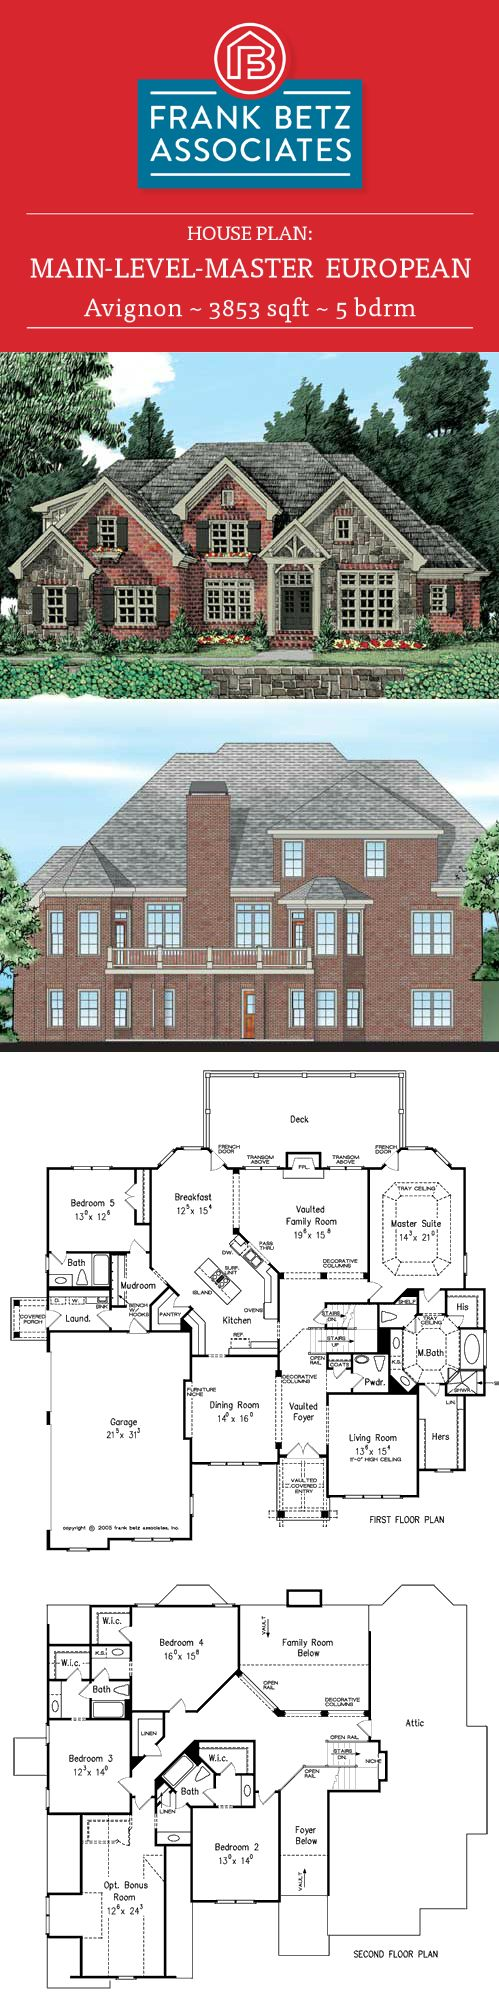 Avignon 3853 sqft 5 bdrm european house plan design by frank betz associates